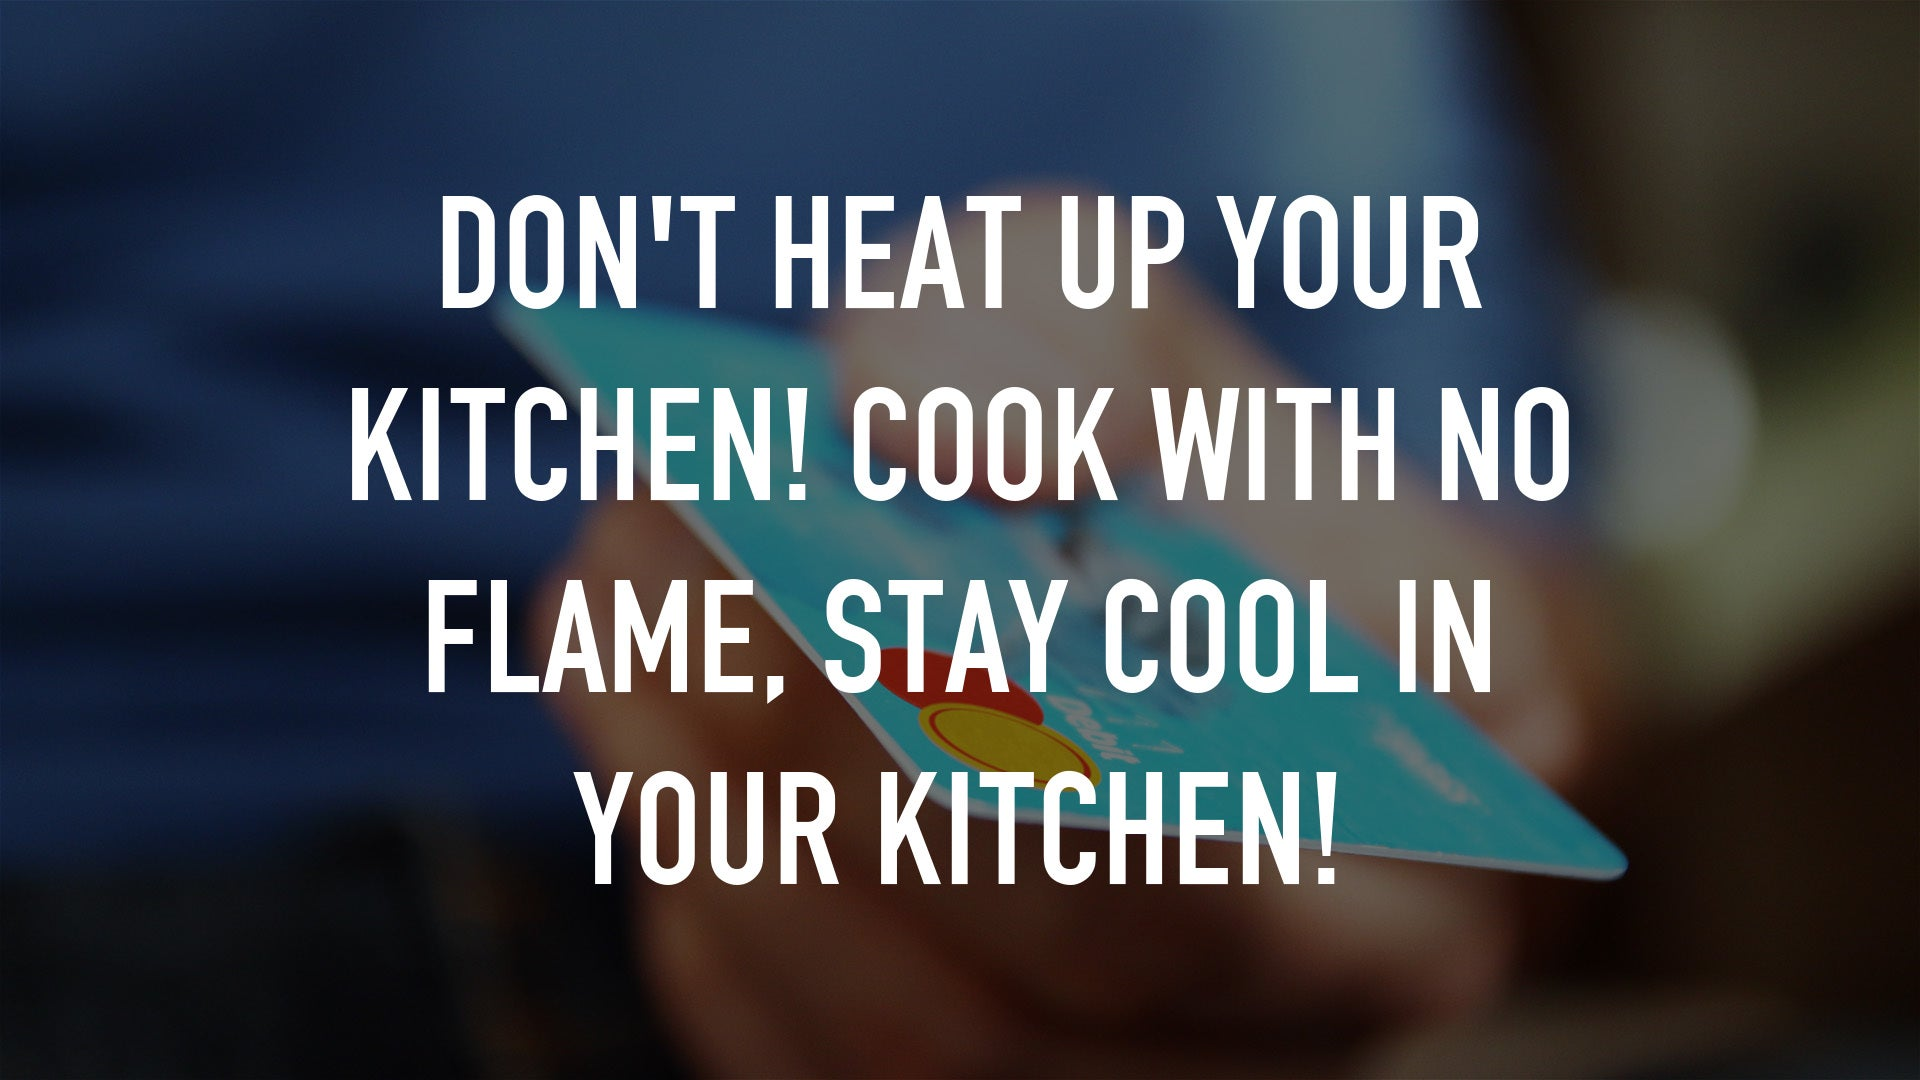 Don't heat up your kitchen! Cook with no flame, stay cool in your kitchen!